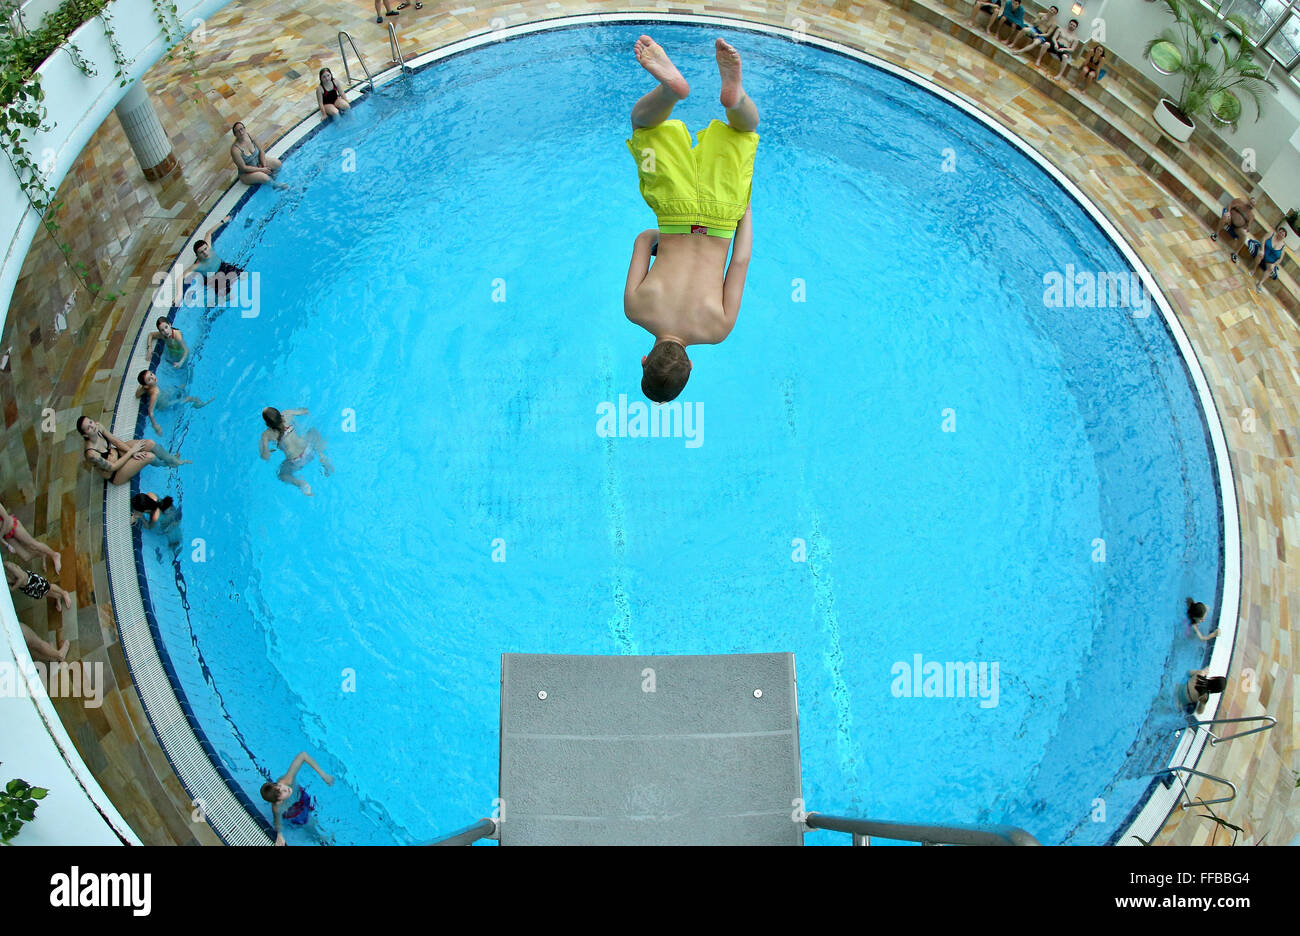 Bad Lausick Schwimmbad Bad Lausick Germany 09th Feb 2016 A Boy Jumps From A 3 Meter